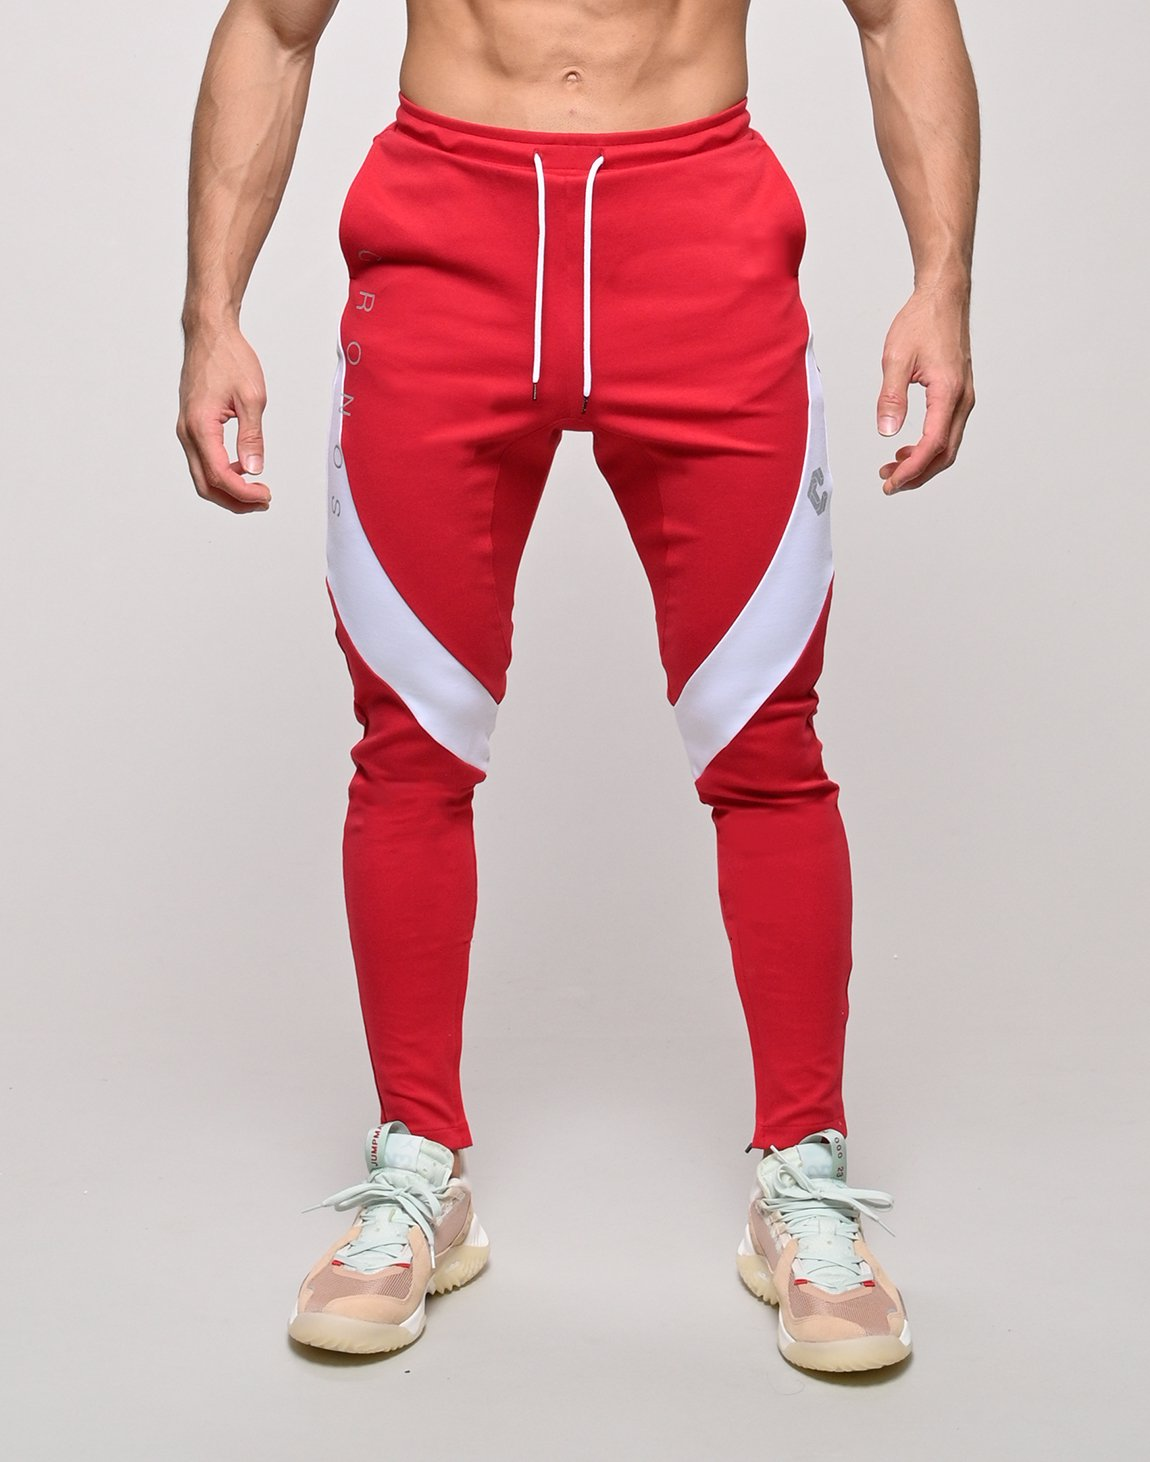 CRONOS QUADRICEPS LINE PANTS【RED】